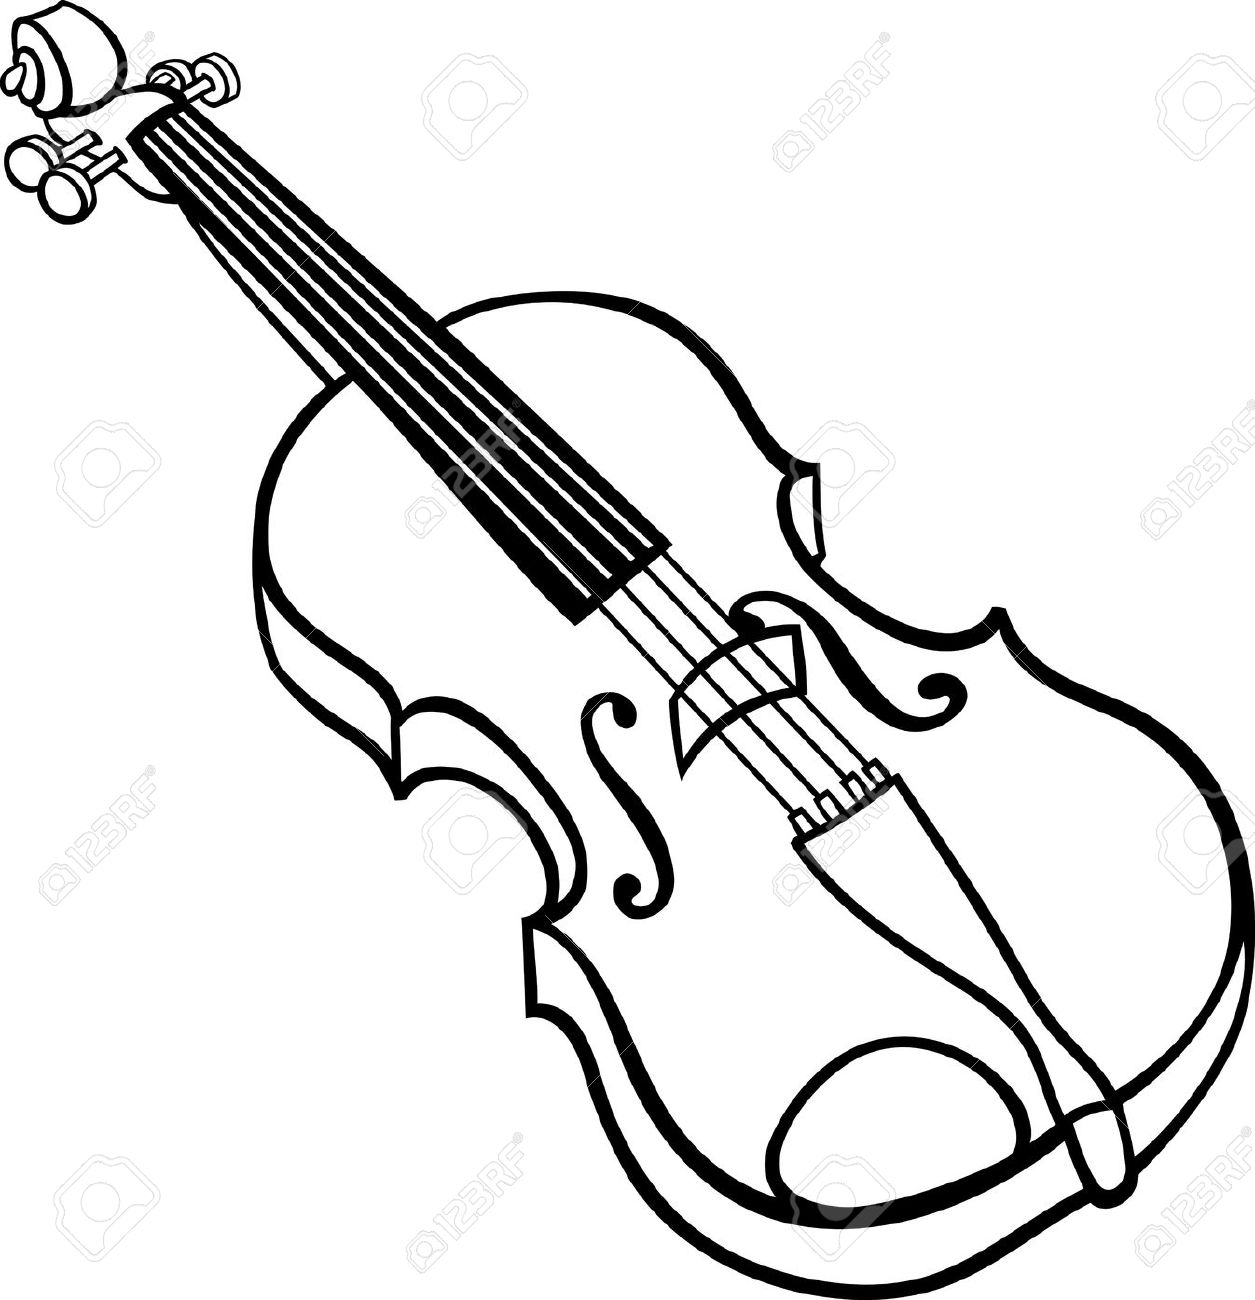 Violin Black And White Clipart. Black and White Cartoon .